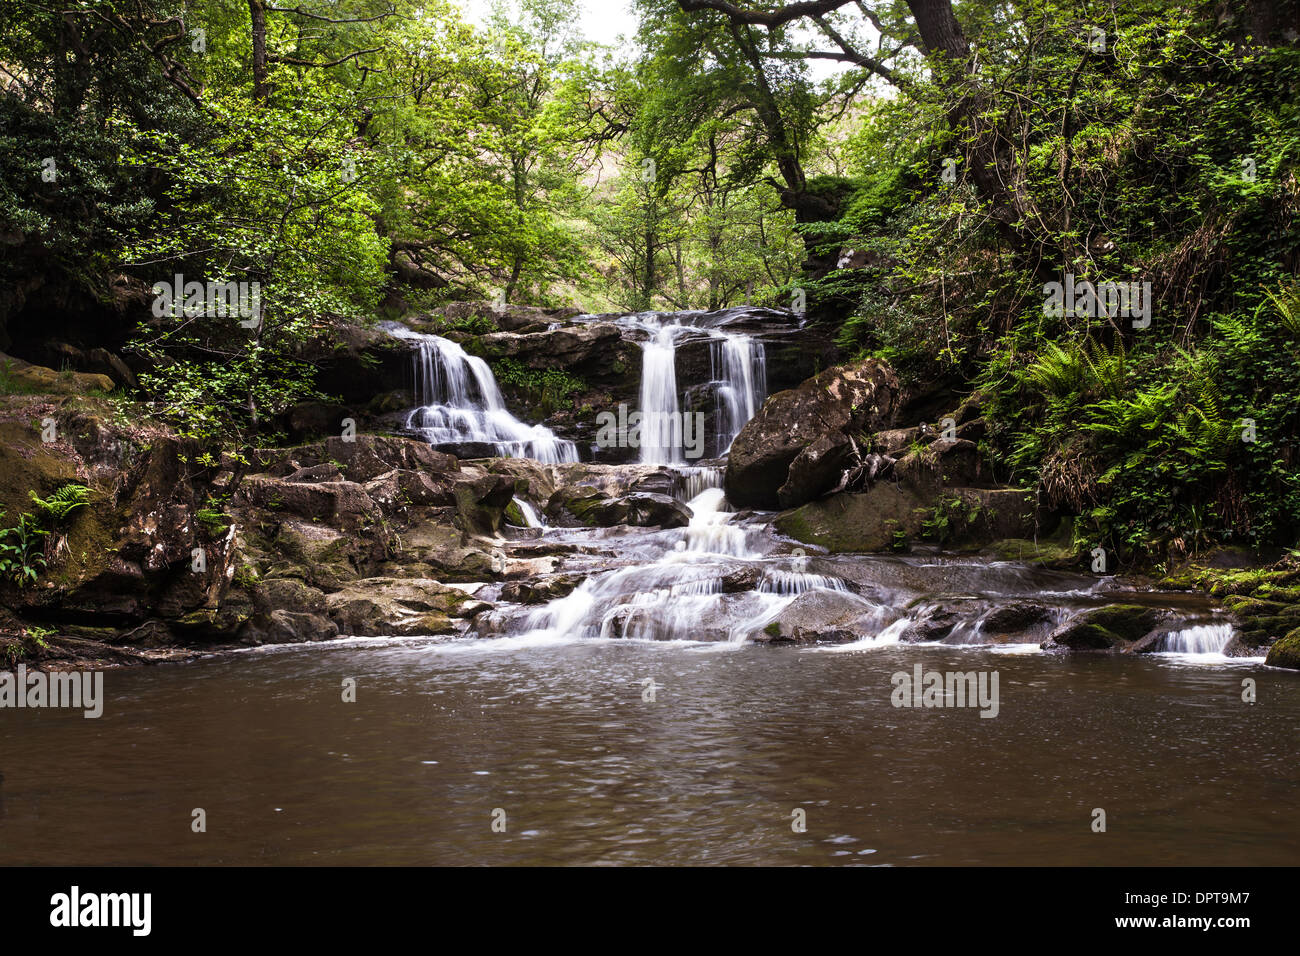 Water Ark Foss, Murk Esk, Beck Hole, North Yorkshire, England - Stock Image